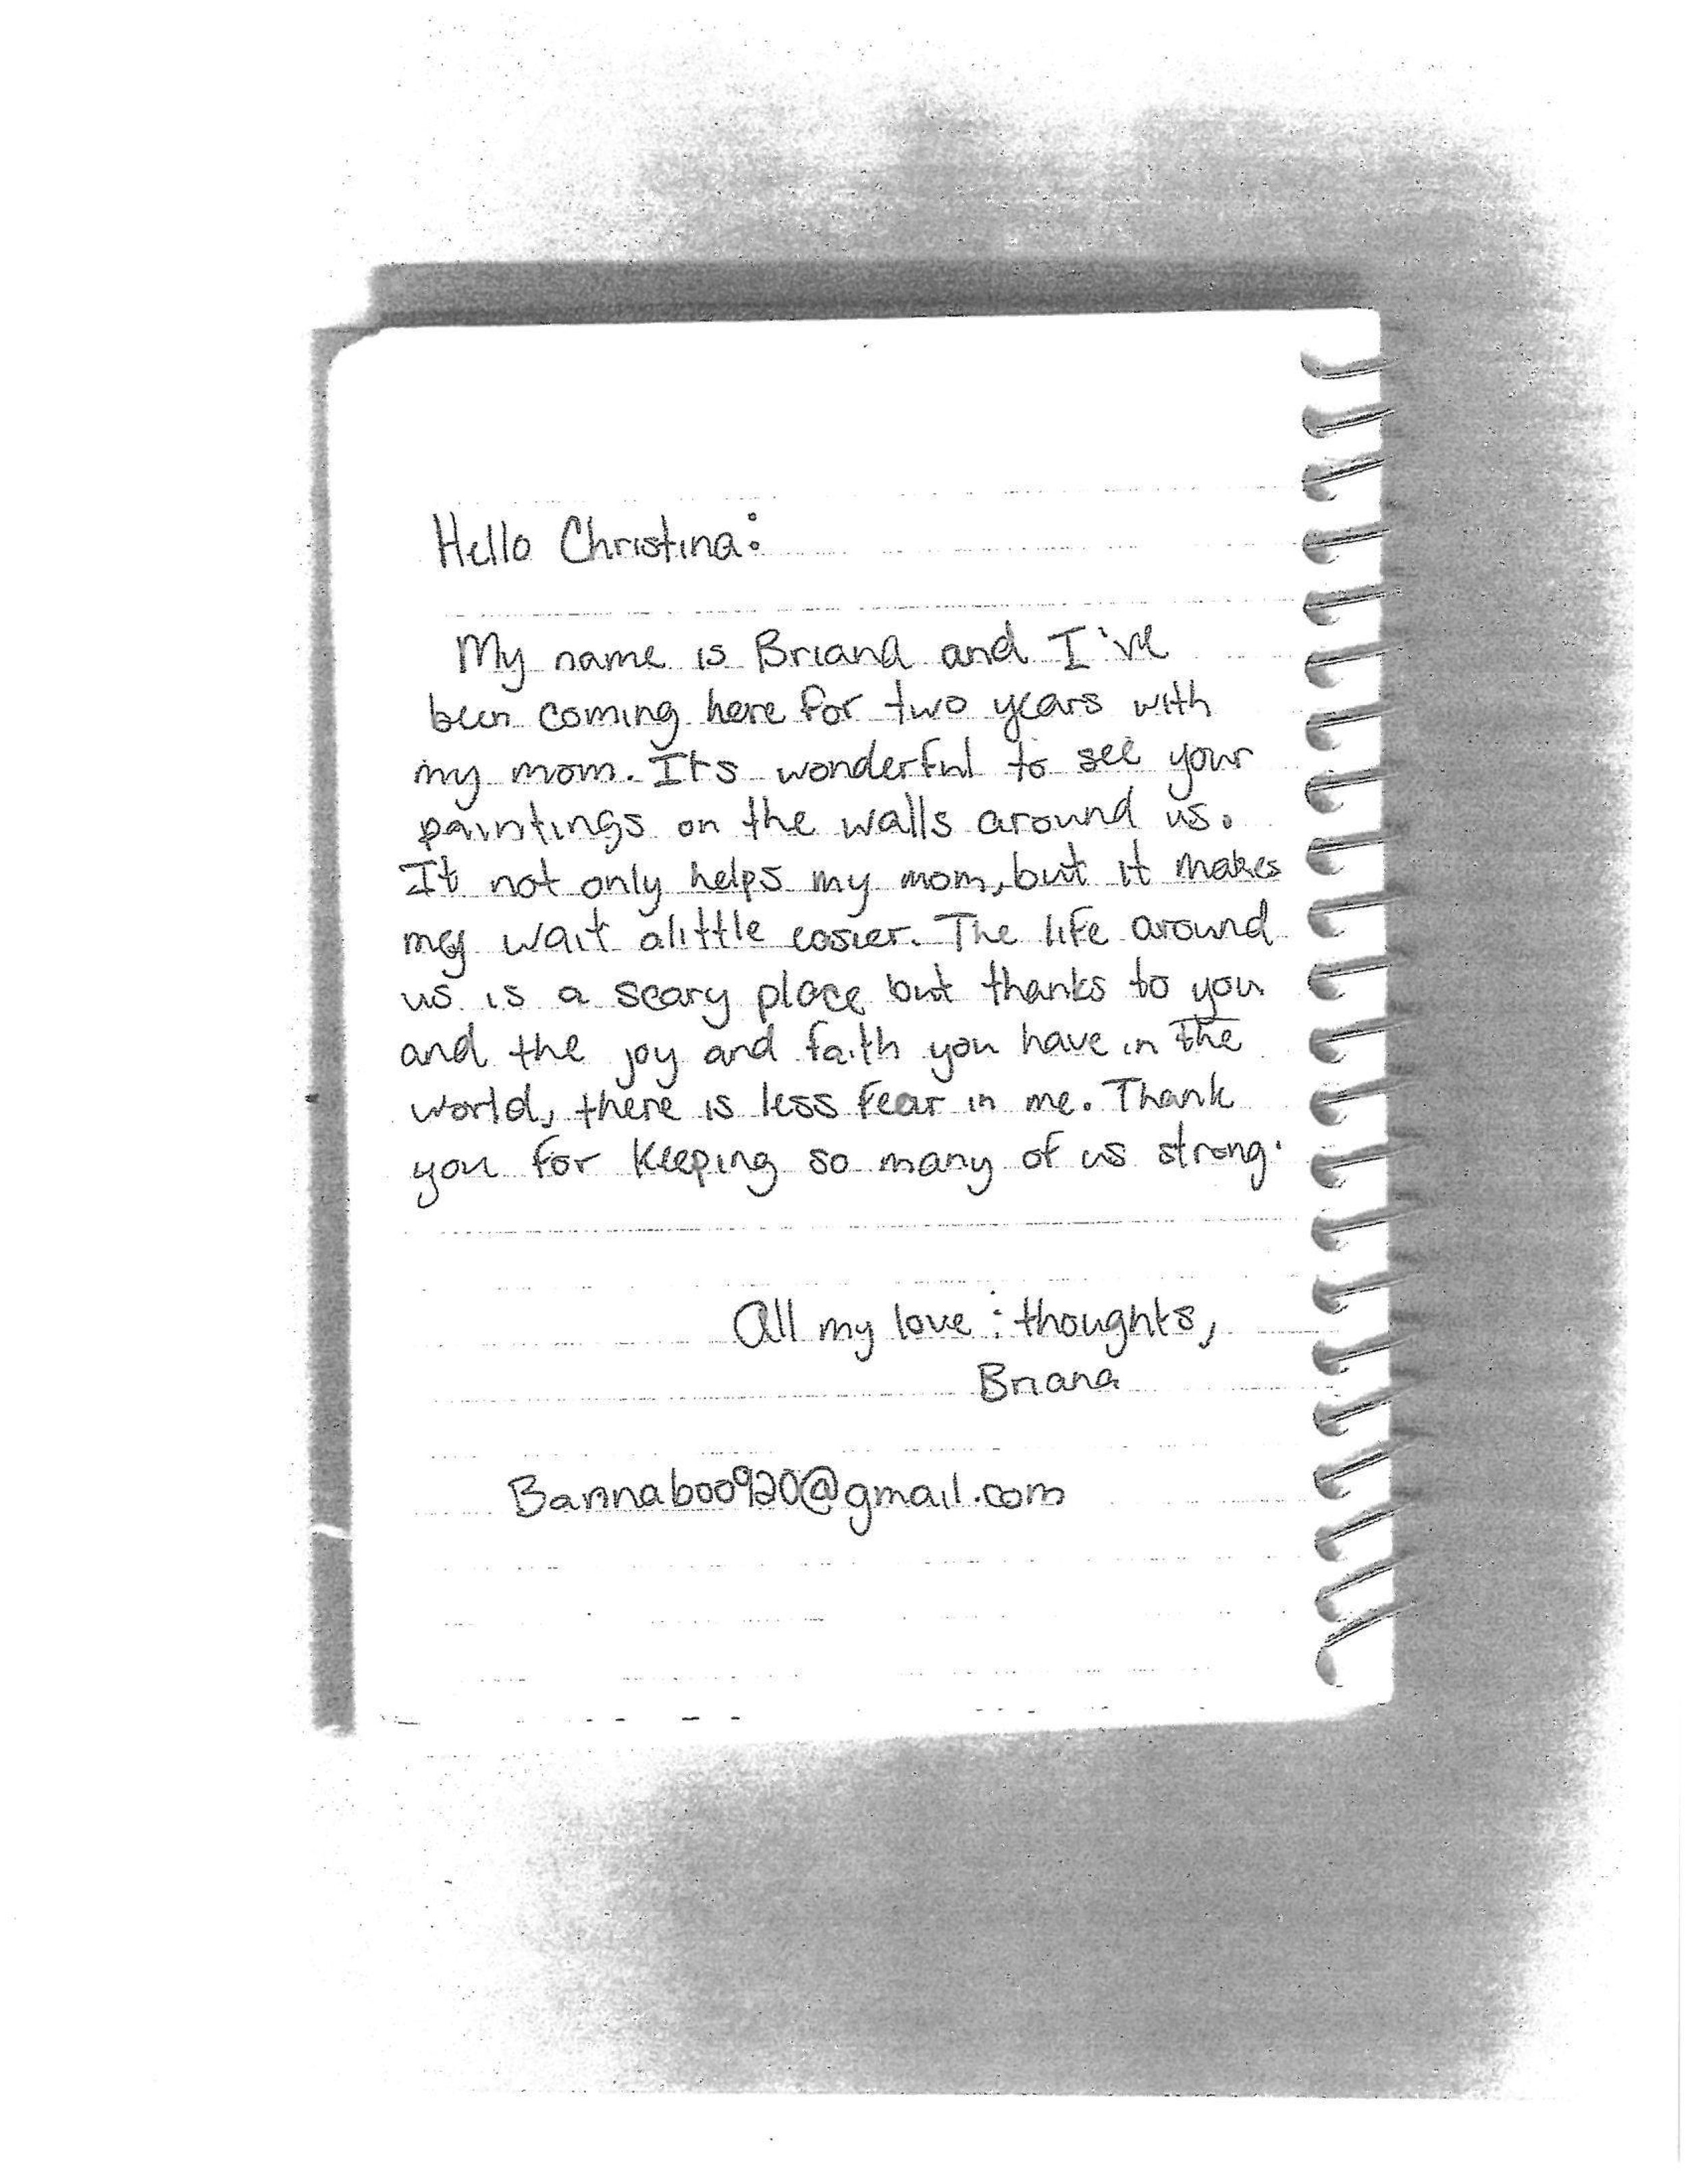 Letter from Briana